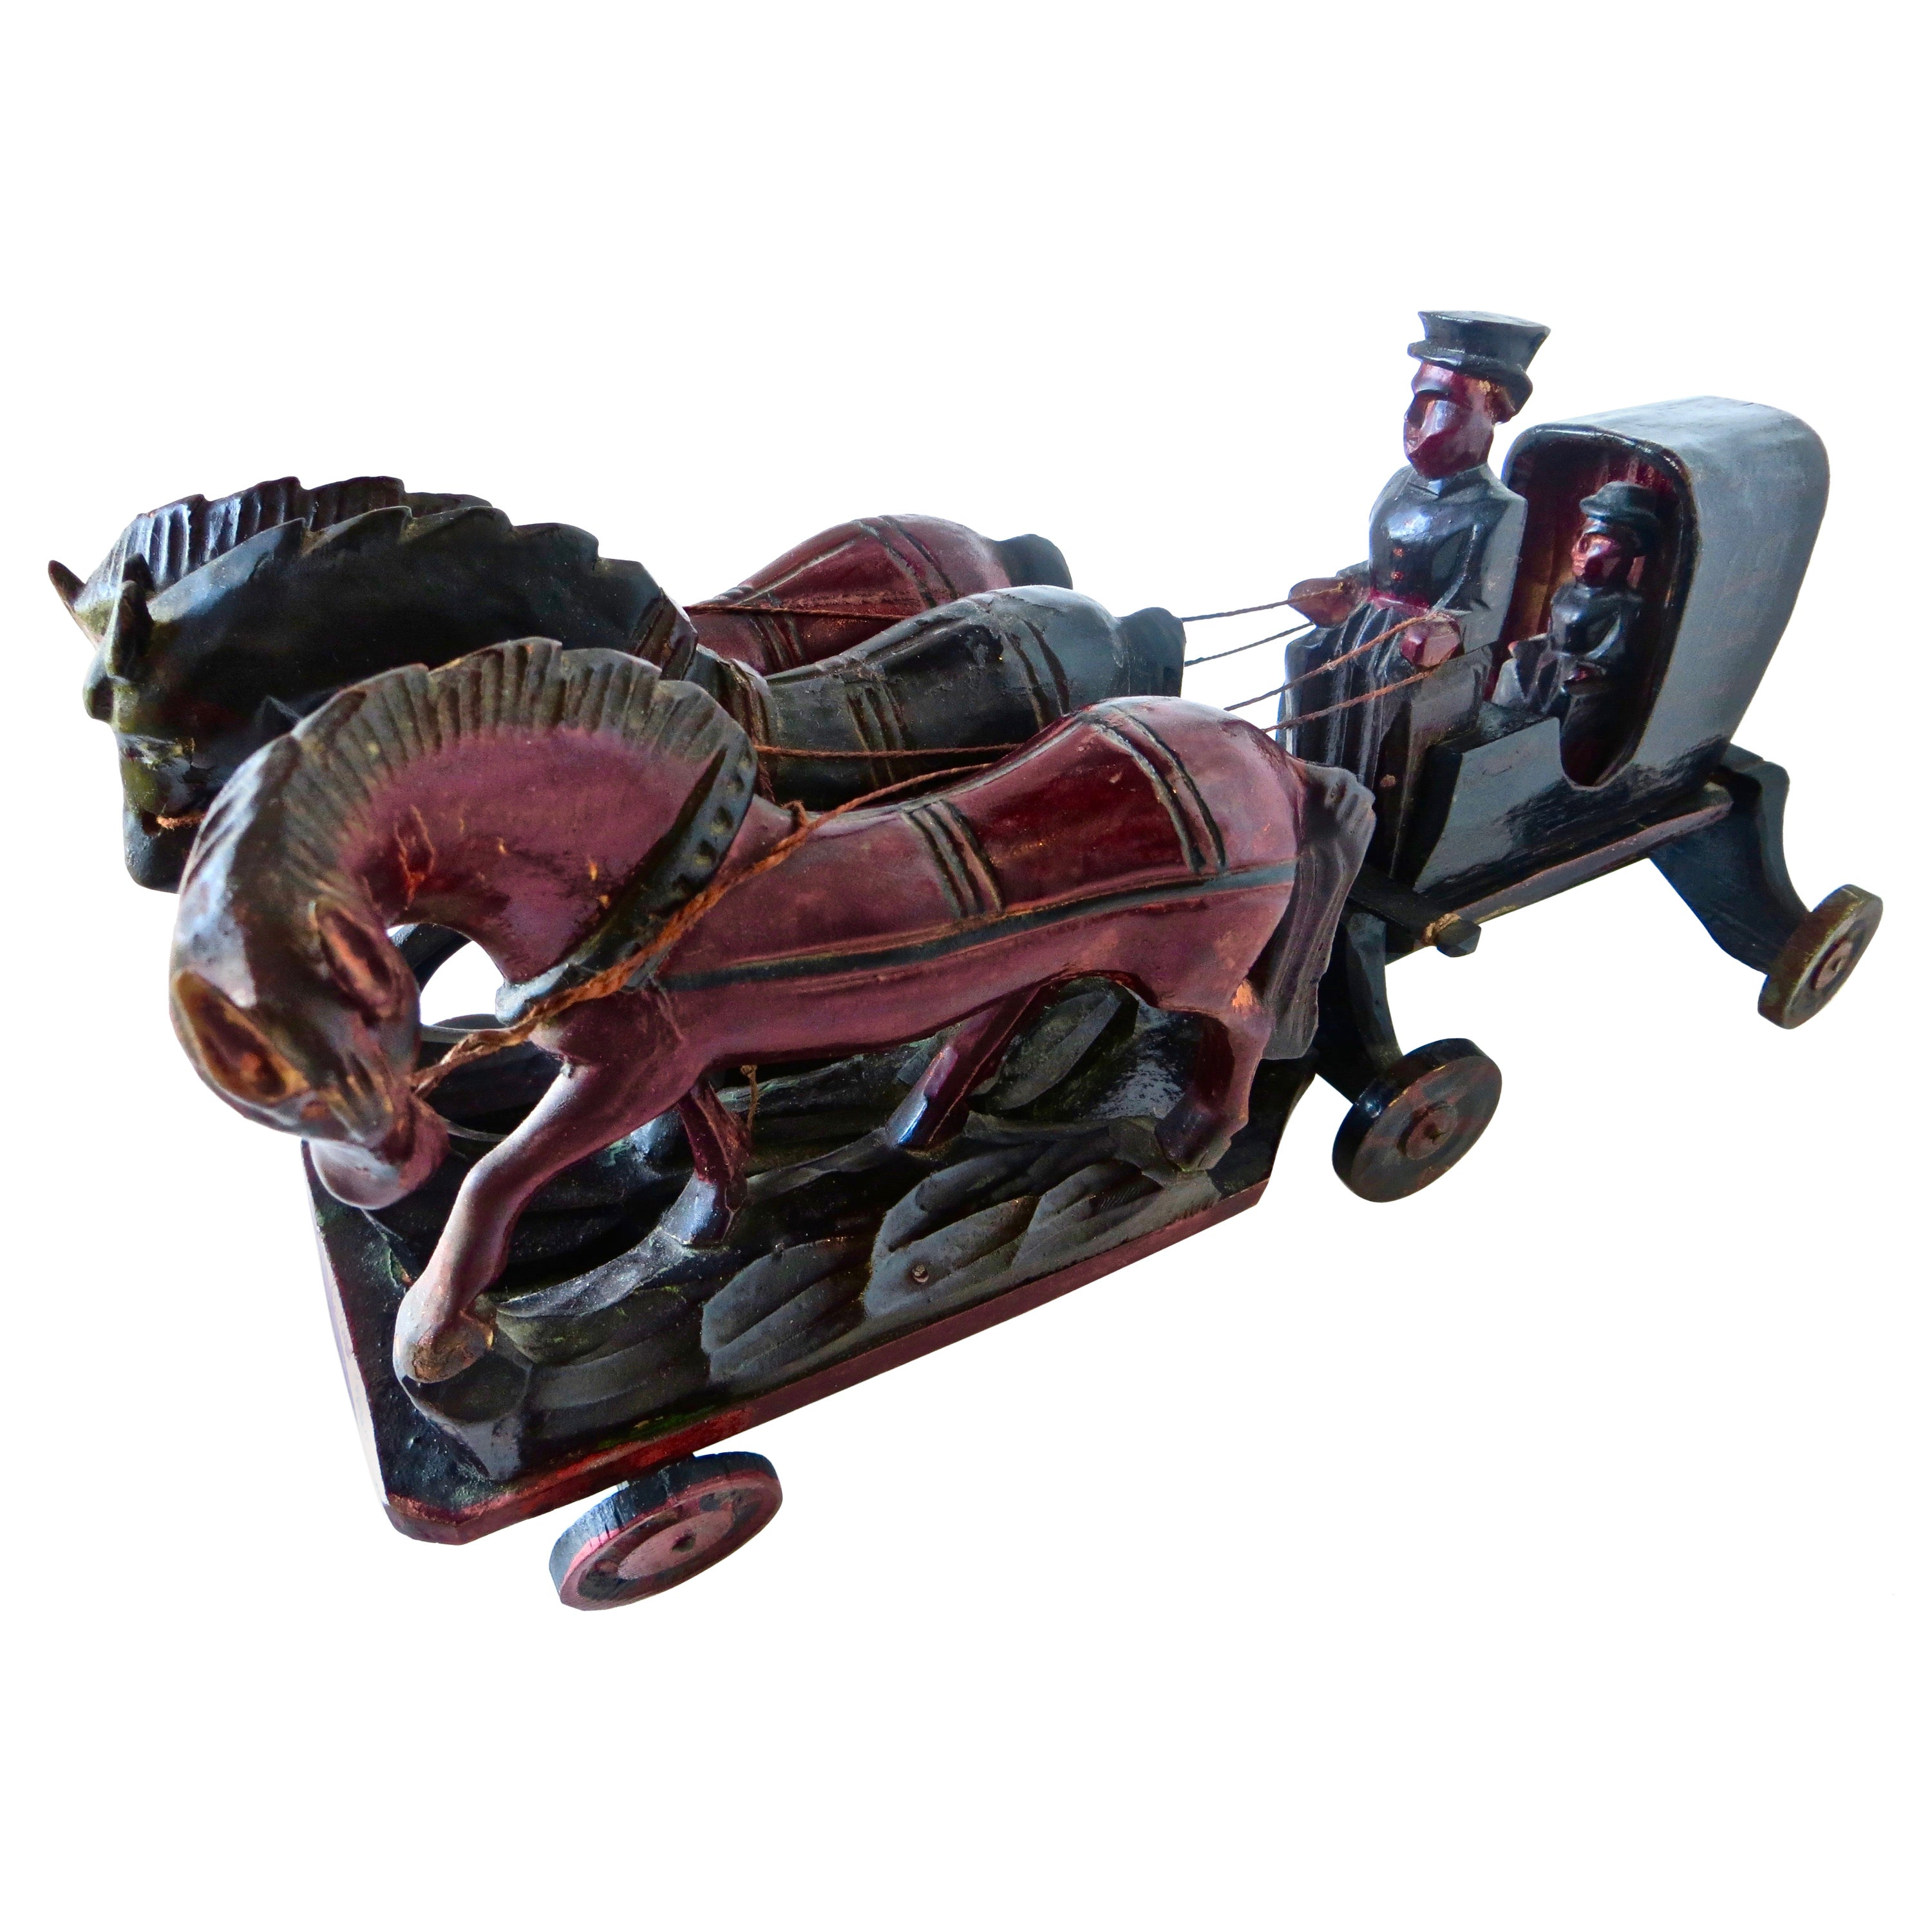 Prototype Late 19th Century Hand Carved Toy Horse Drawn Hansom Cab, American